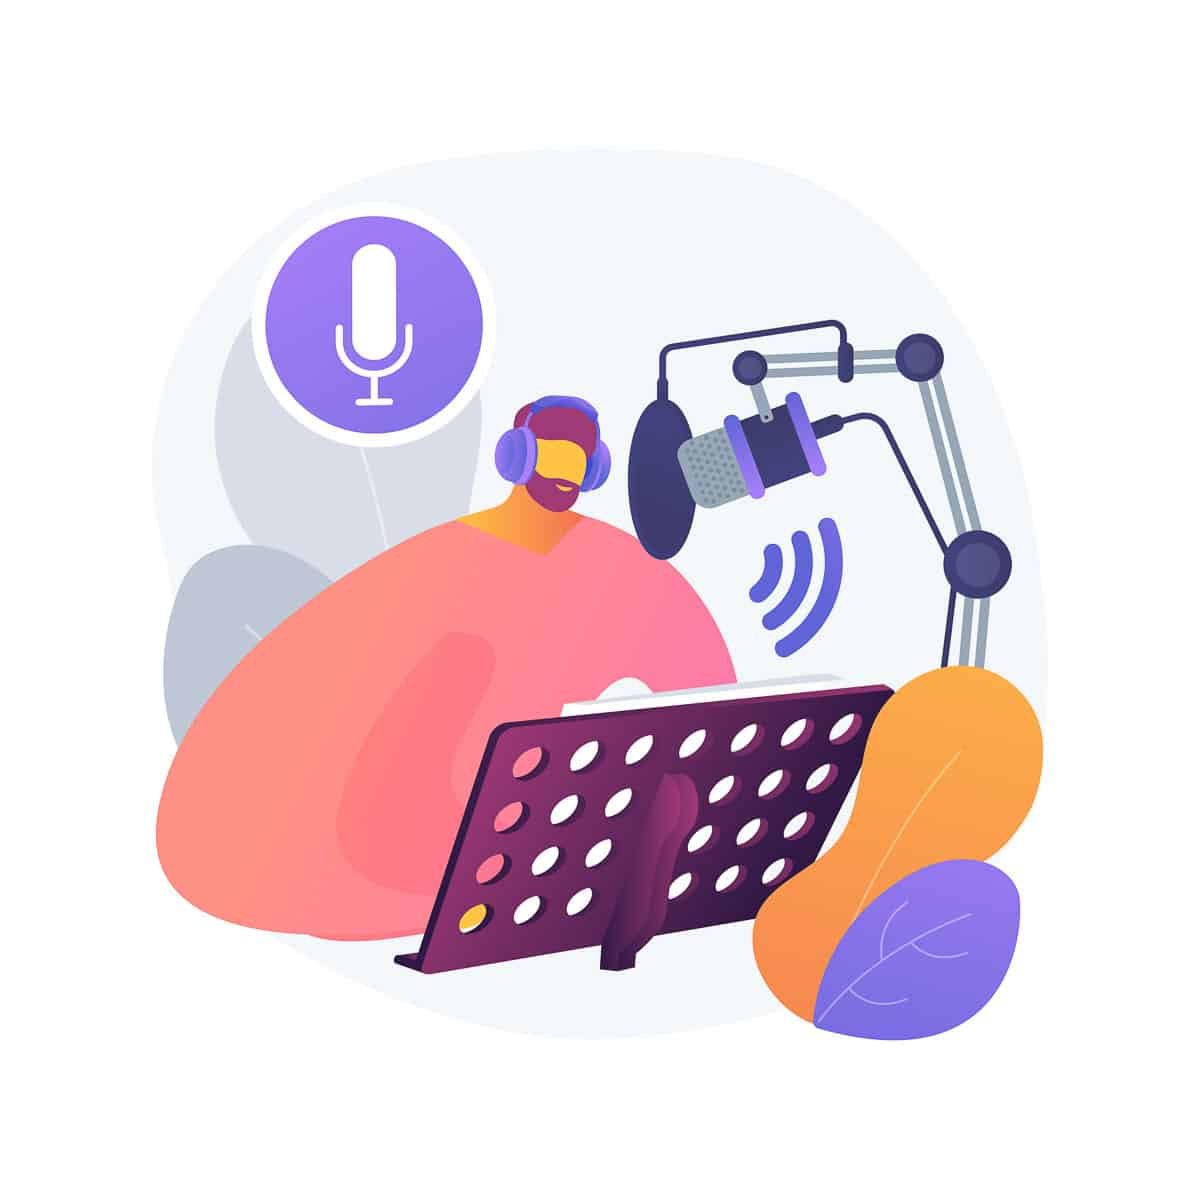 Voice over services abstract concept vector illustration. Voice over recording studio, audio and video production services, narration artist, advertising agency, text to speech abstract metaphor.